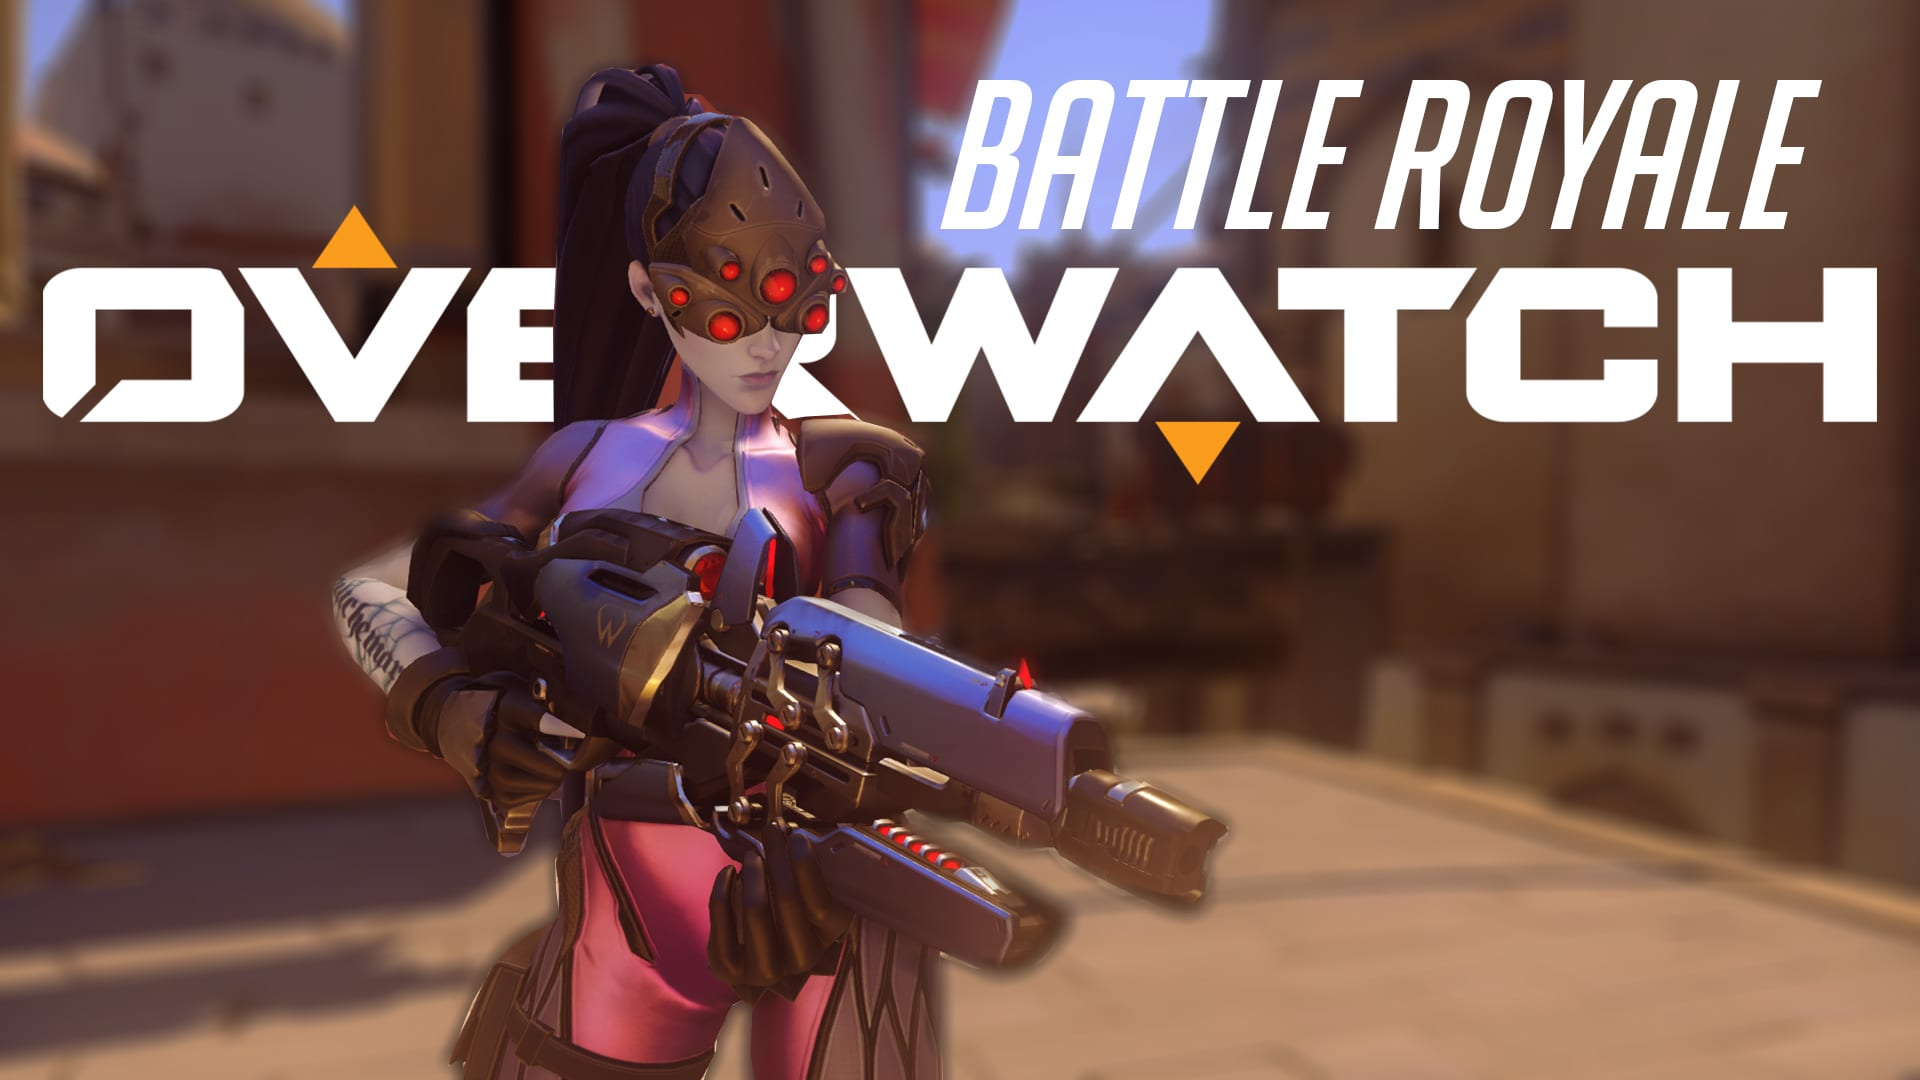 Official Overwatch Battle Royale Mode Confirmed | Sausage Roll